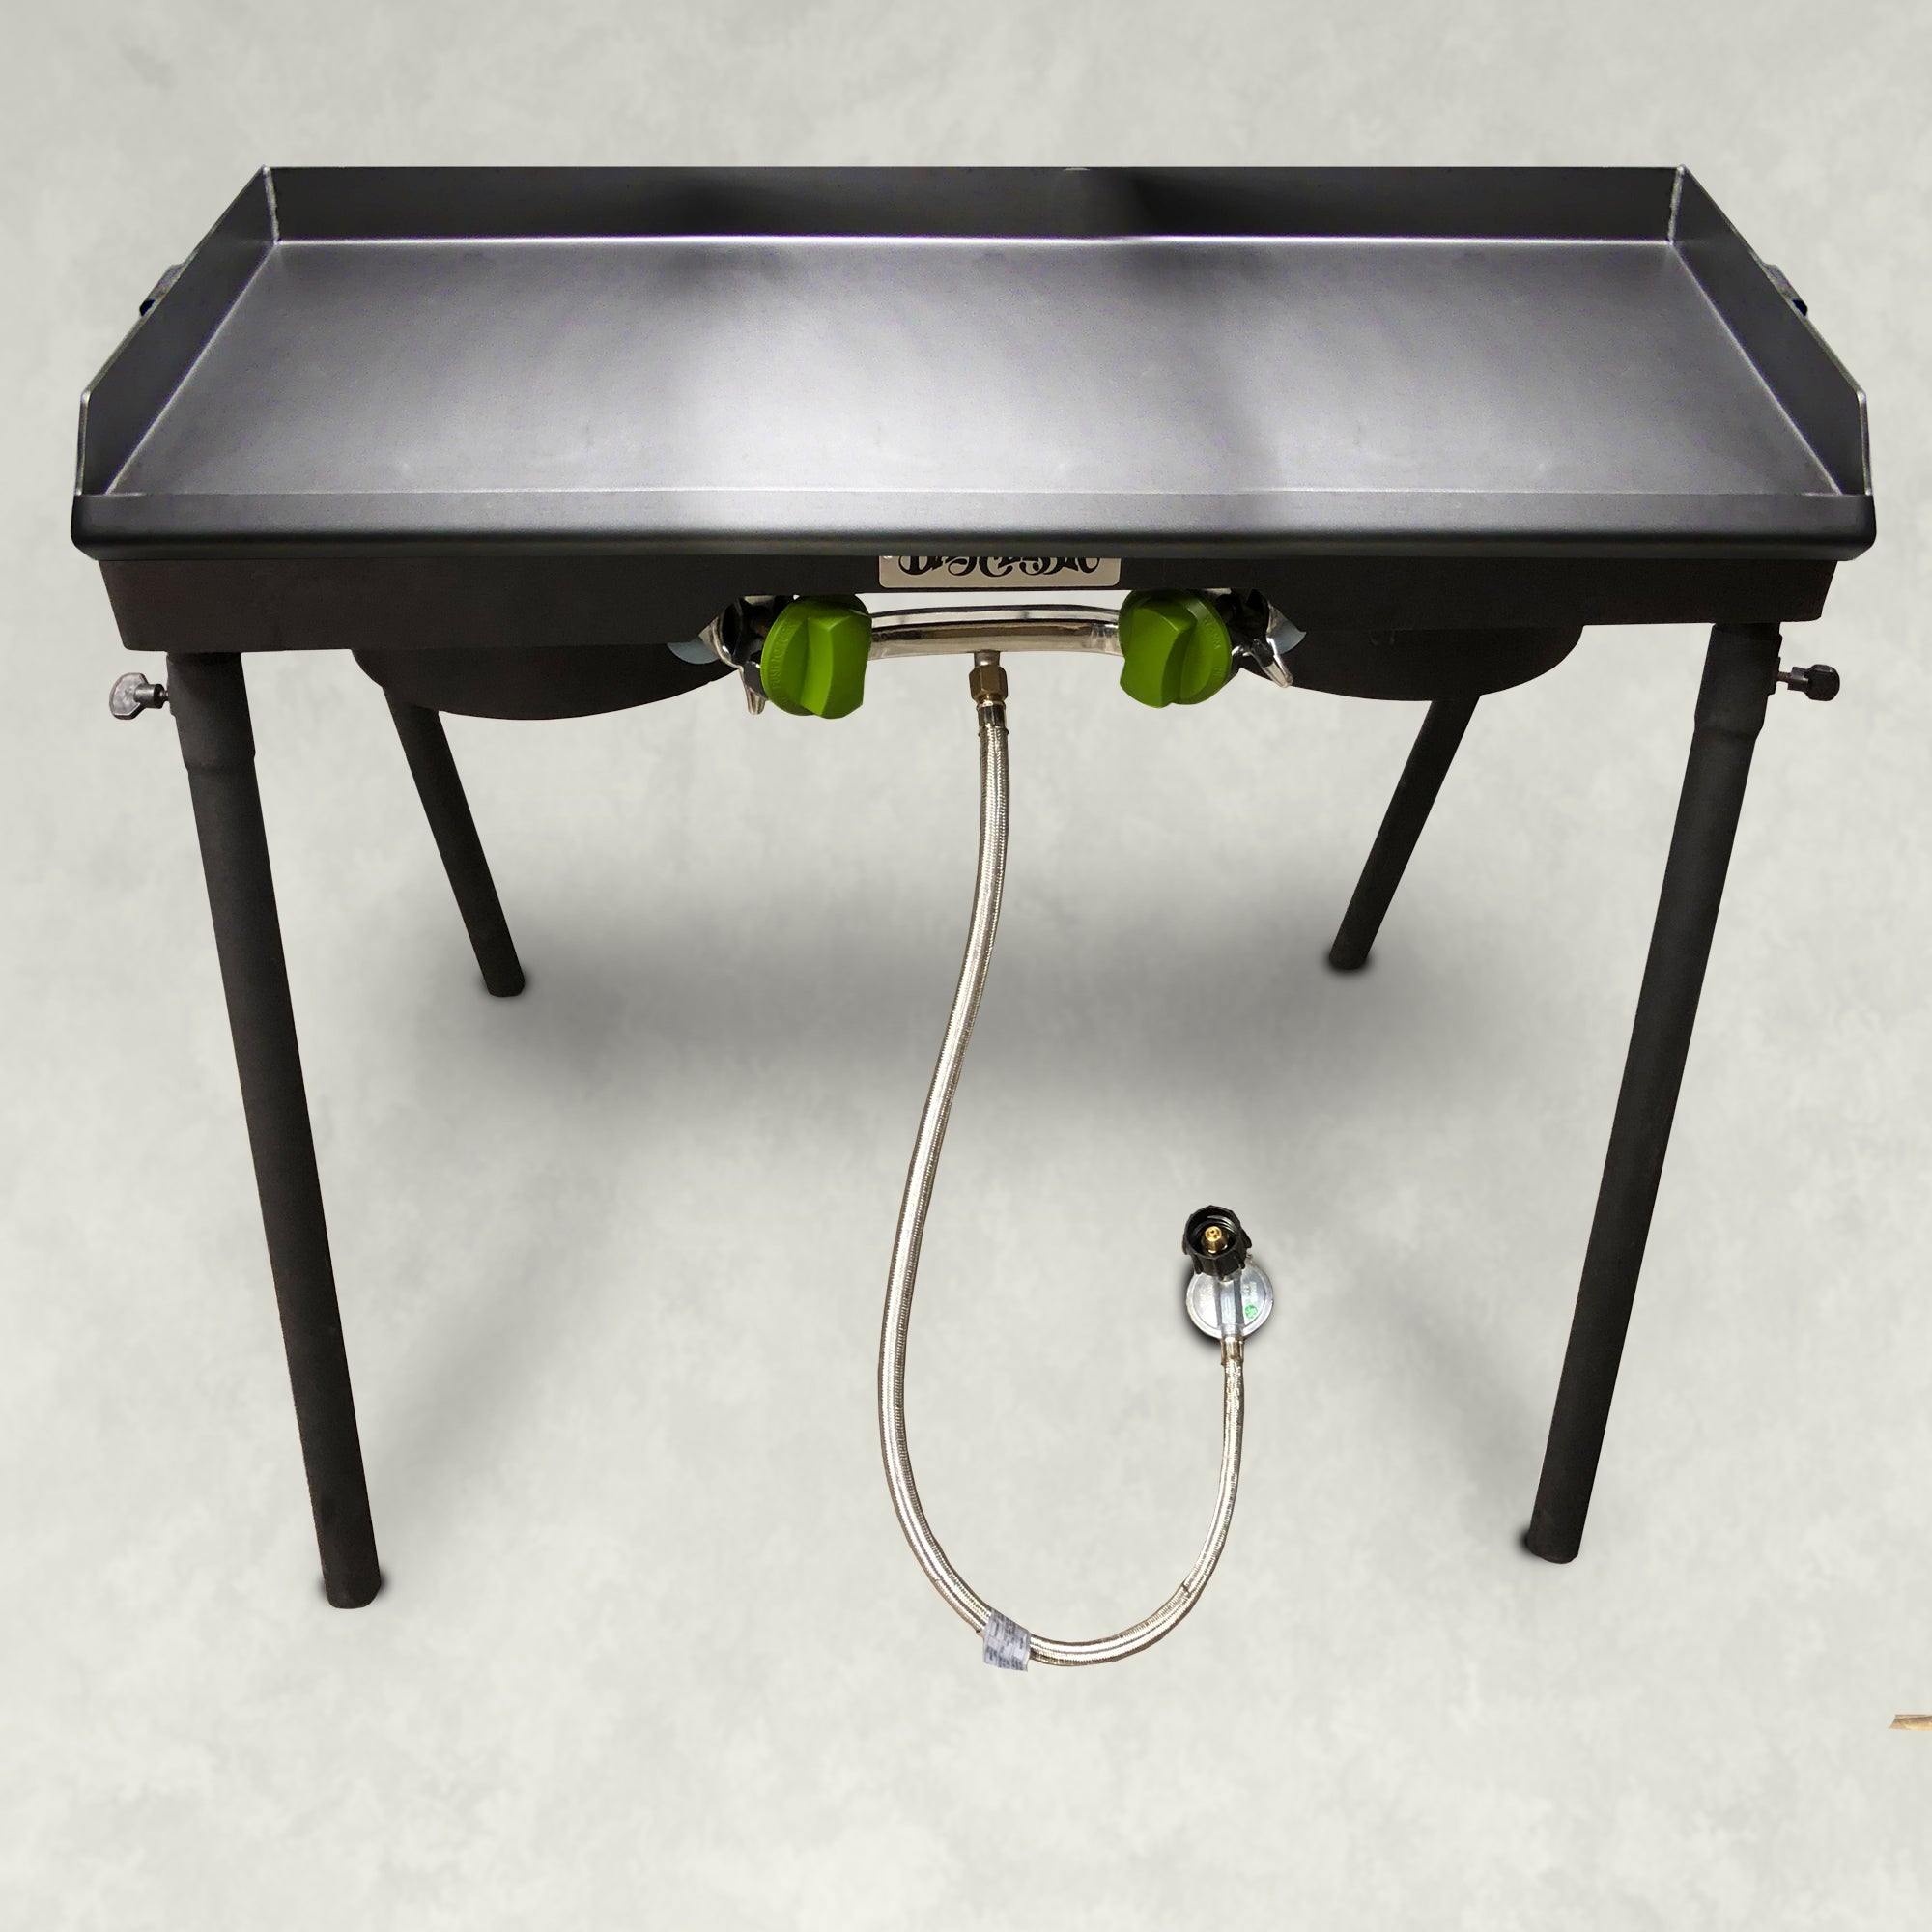 Dual Patio Camp Stove with Double Griddle